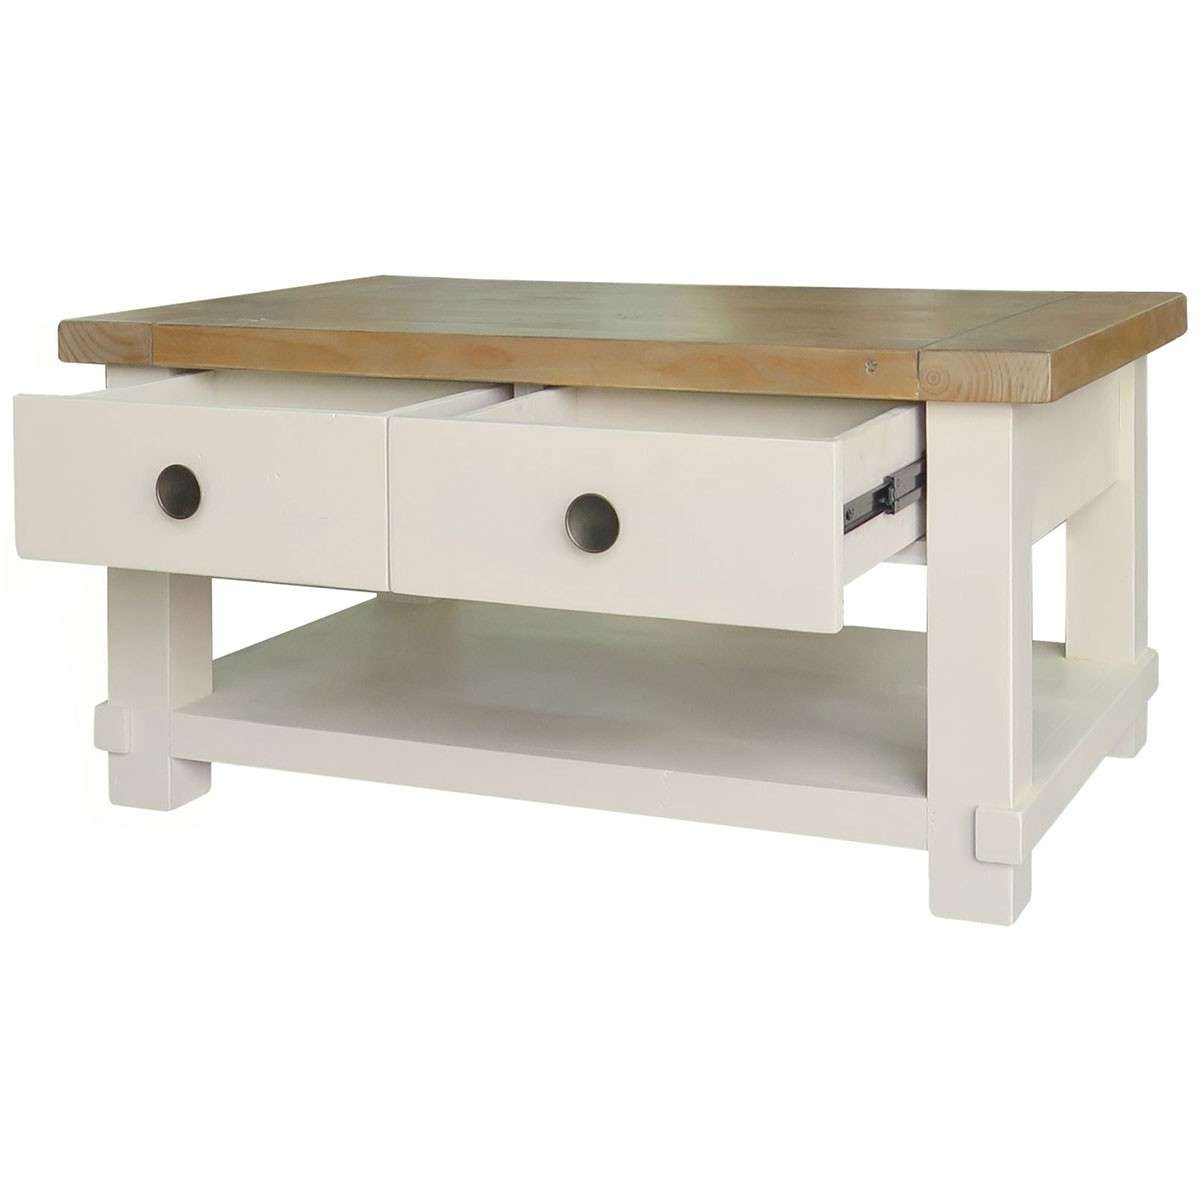 Coffee Table : Adorable Cream Coffee Table With Drawers Garden For Well Known Cream Coffee Tables With Drawers (View 1 of 20)